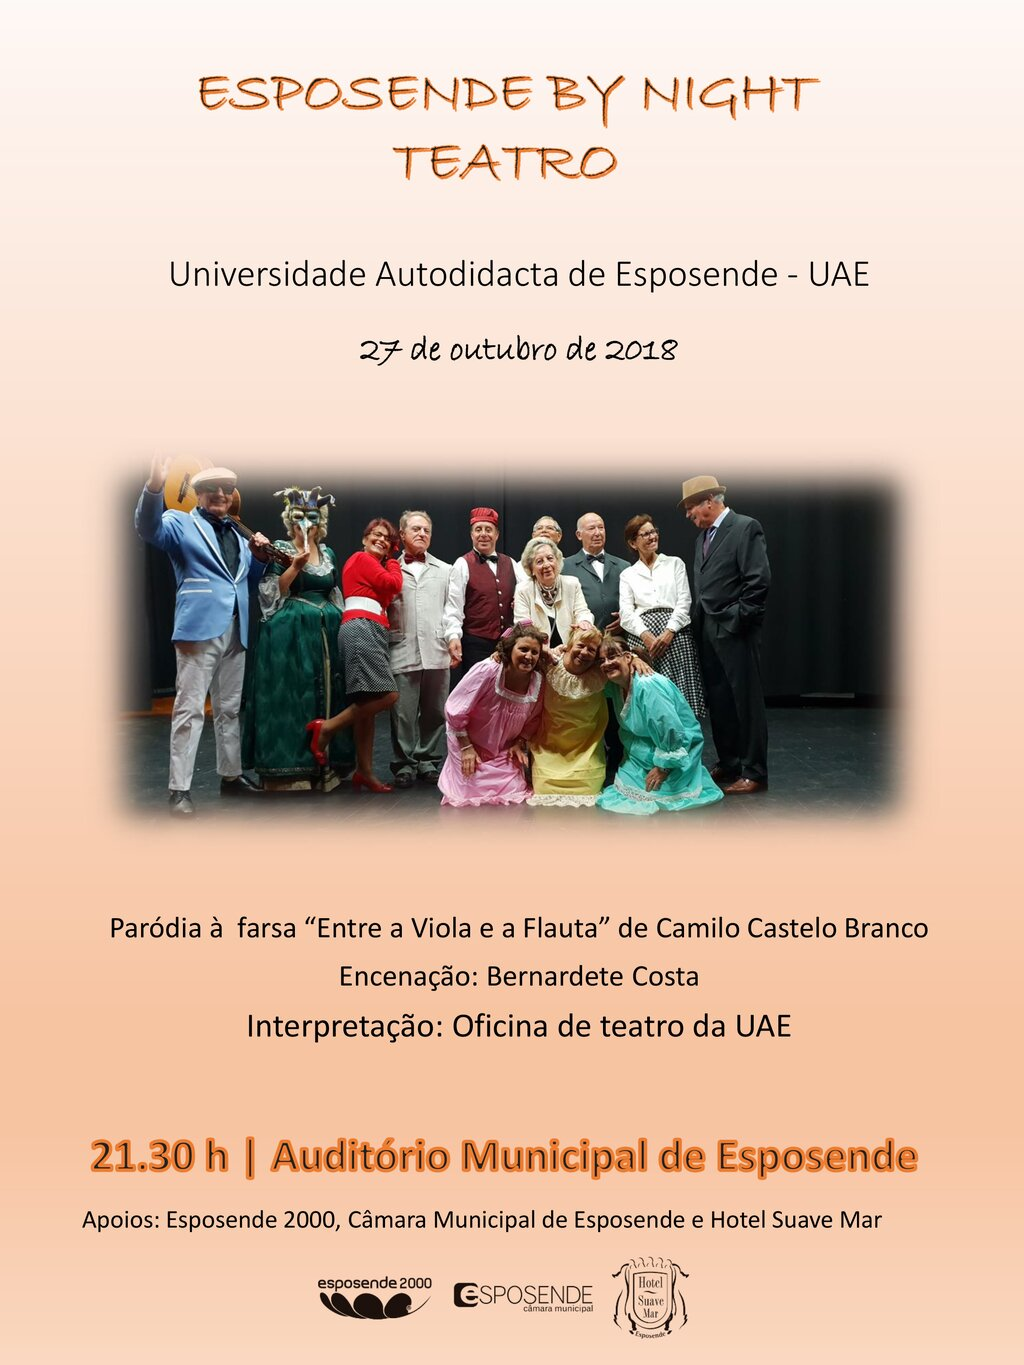 Universidade autodidacta de esposende   uae 1 1024 2500